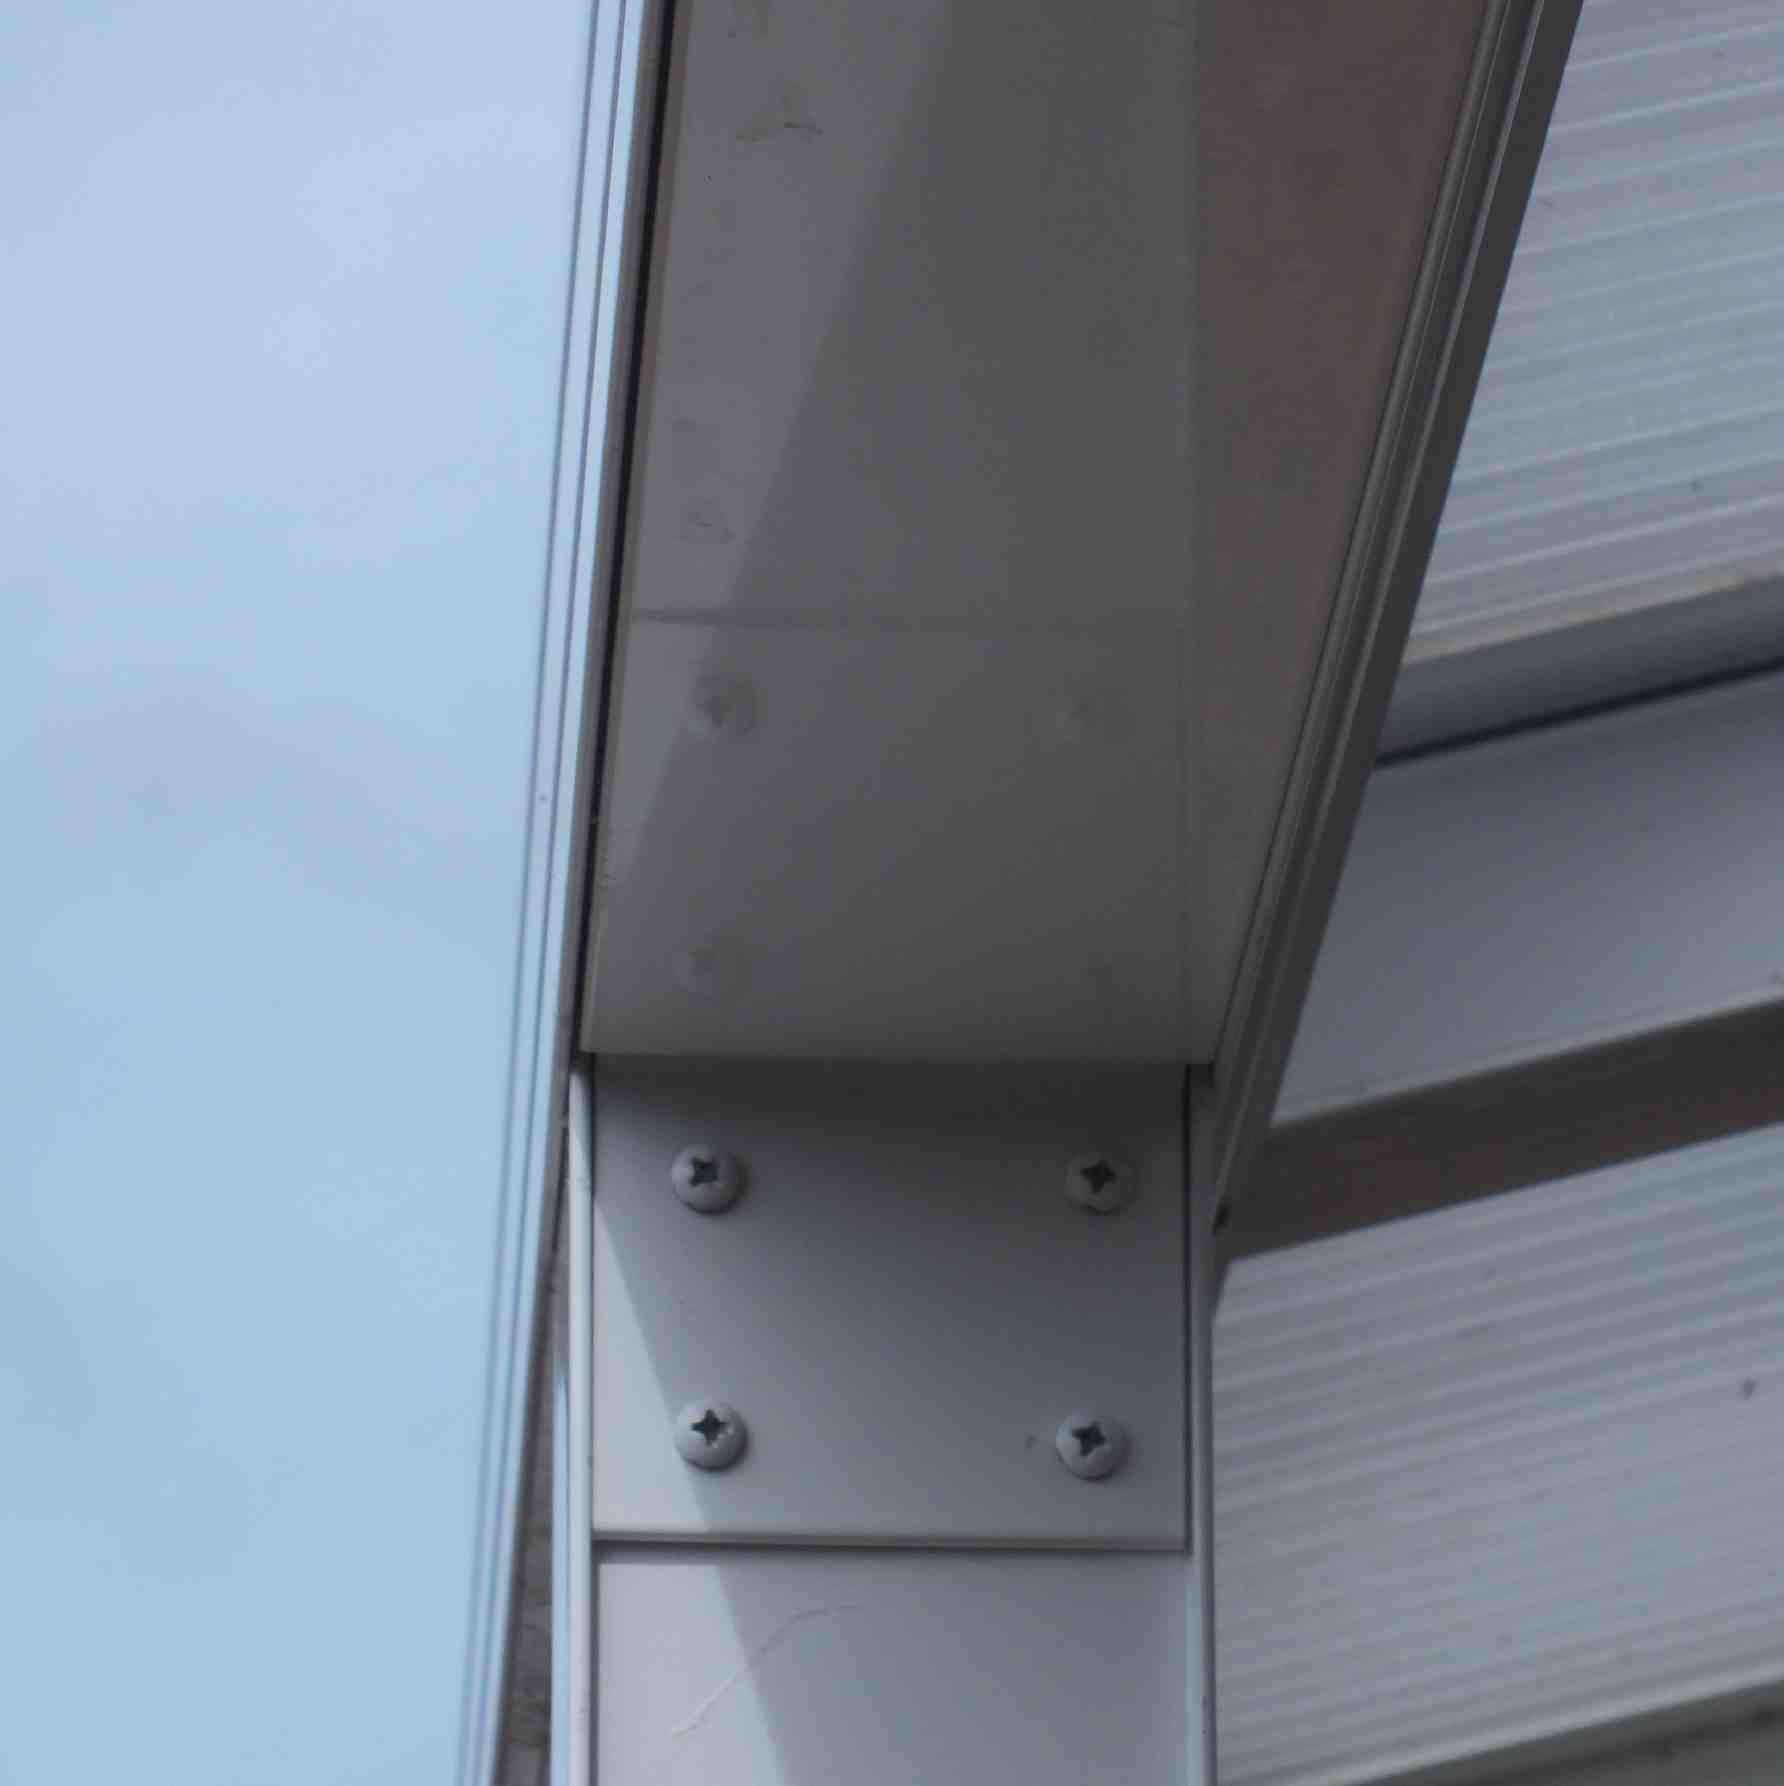 Affordable Omega Verandah with 16mm Polycarbonate Glazing - 12.0m (W) x 3.0m (P), (5) Supporting Posts